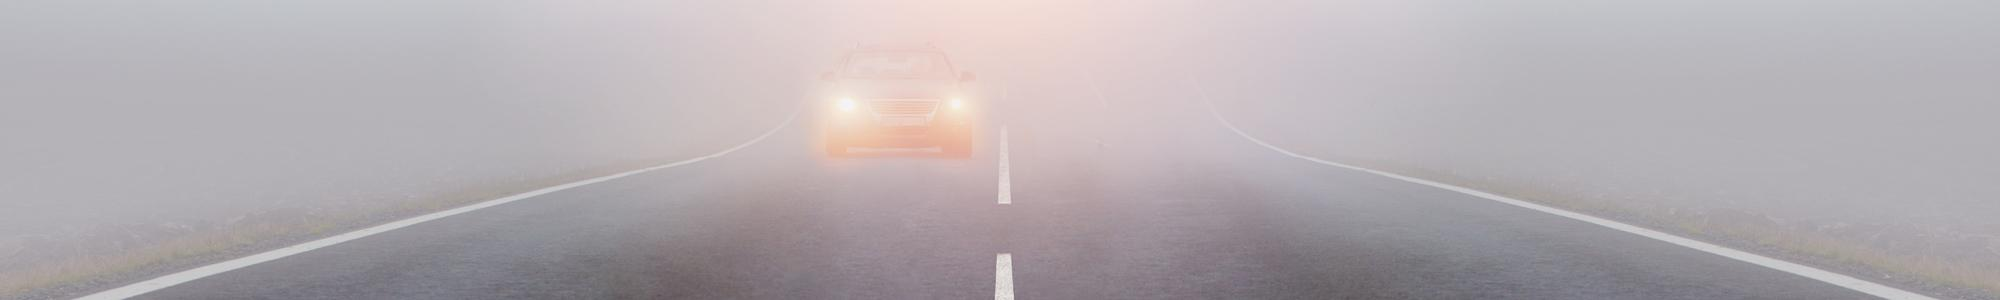 How to drive safely in the fog